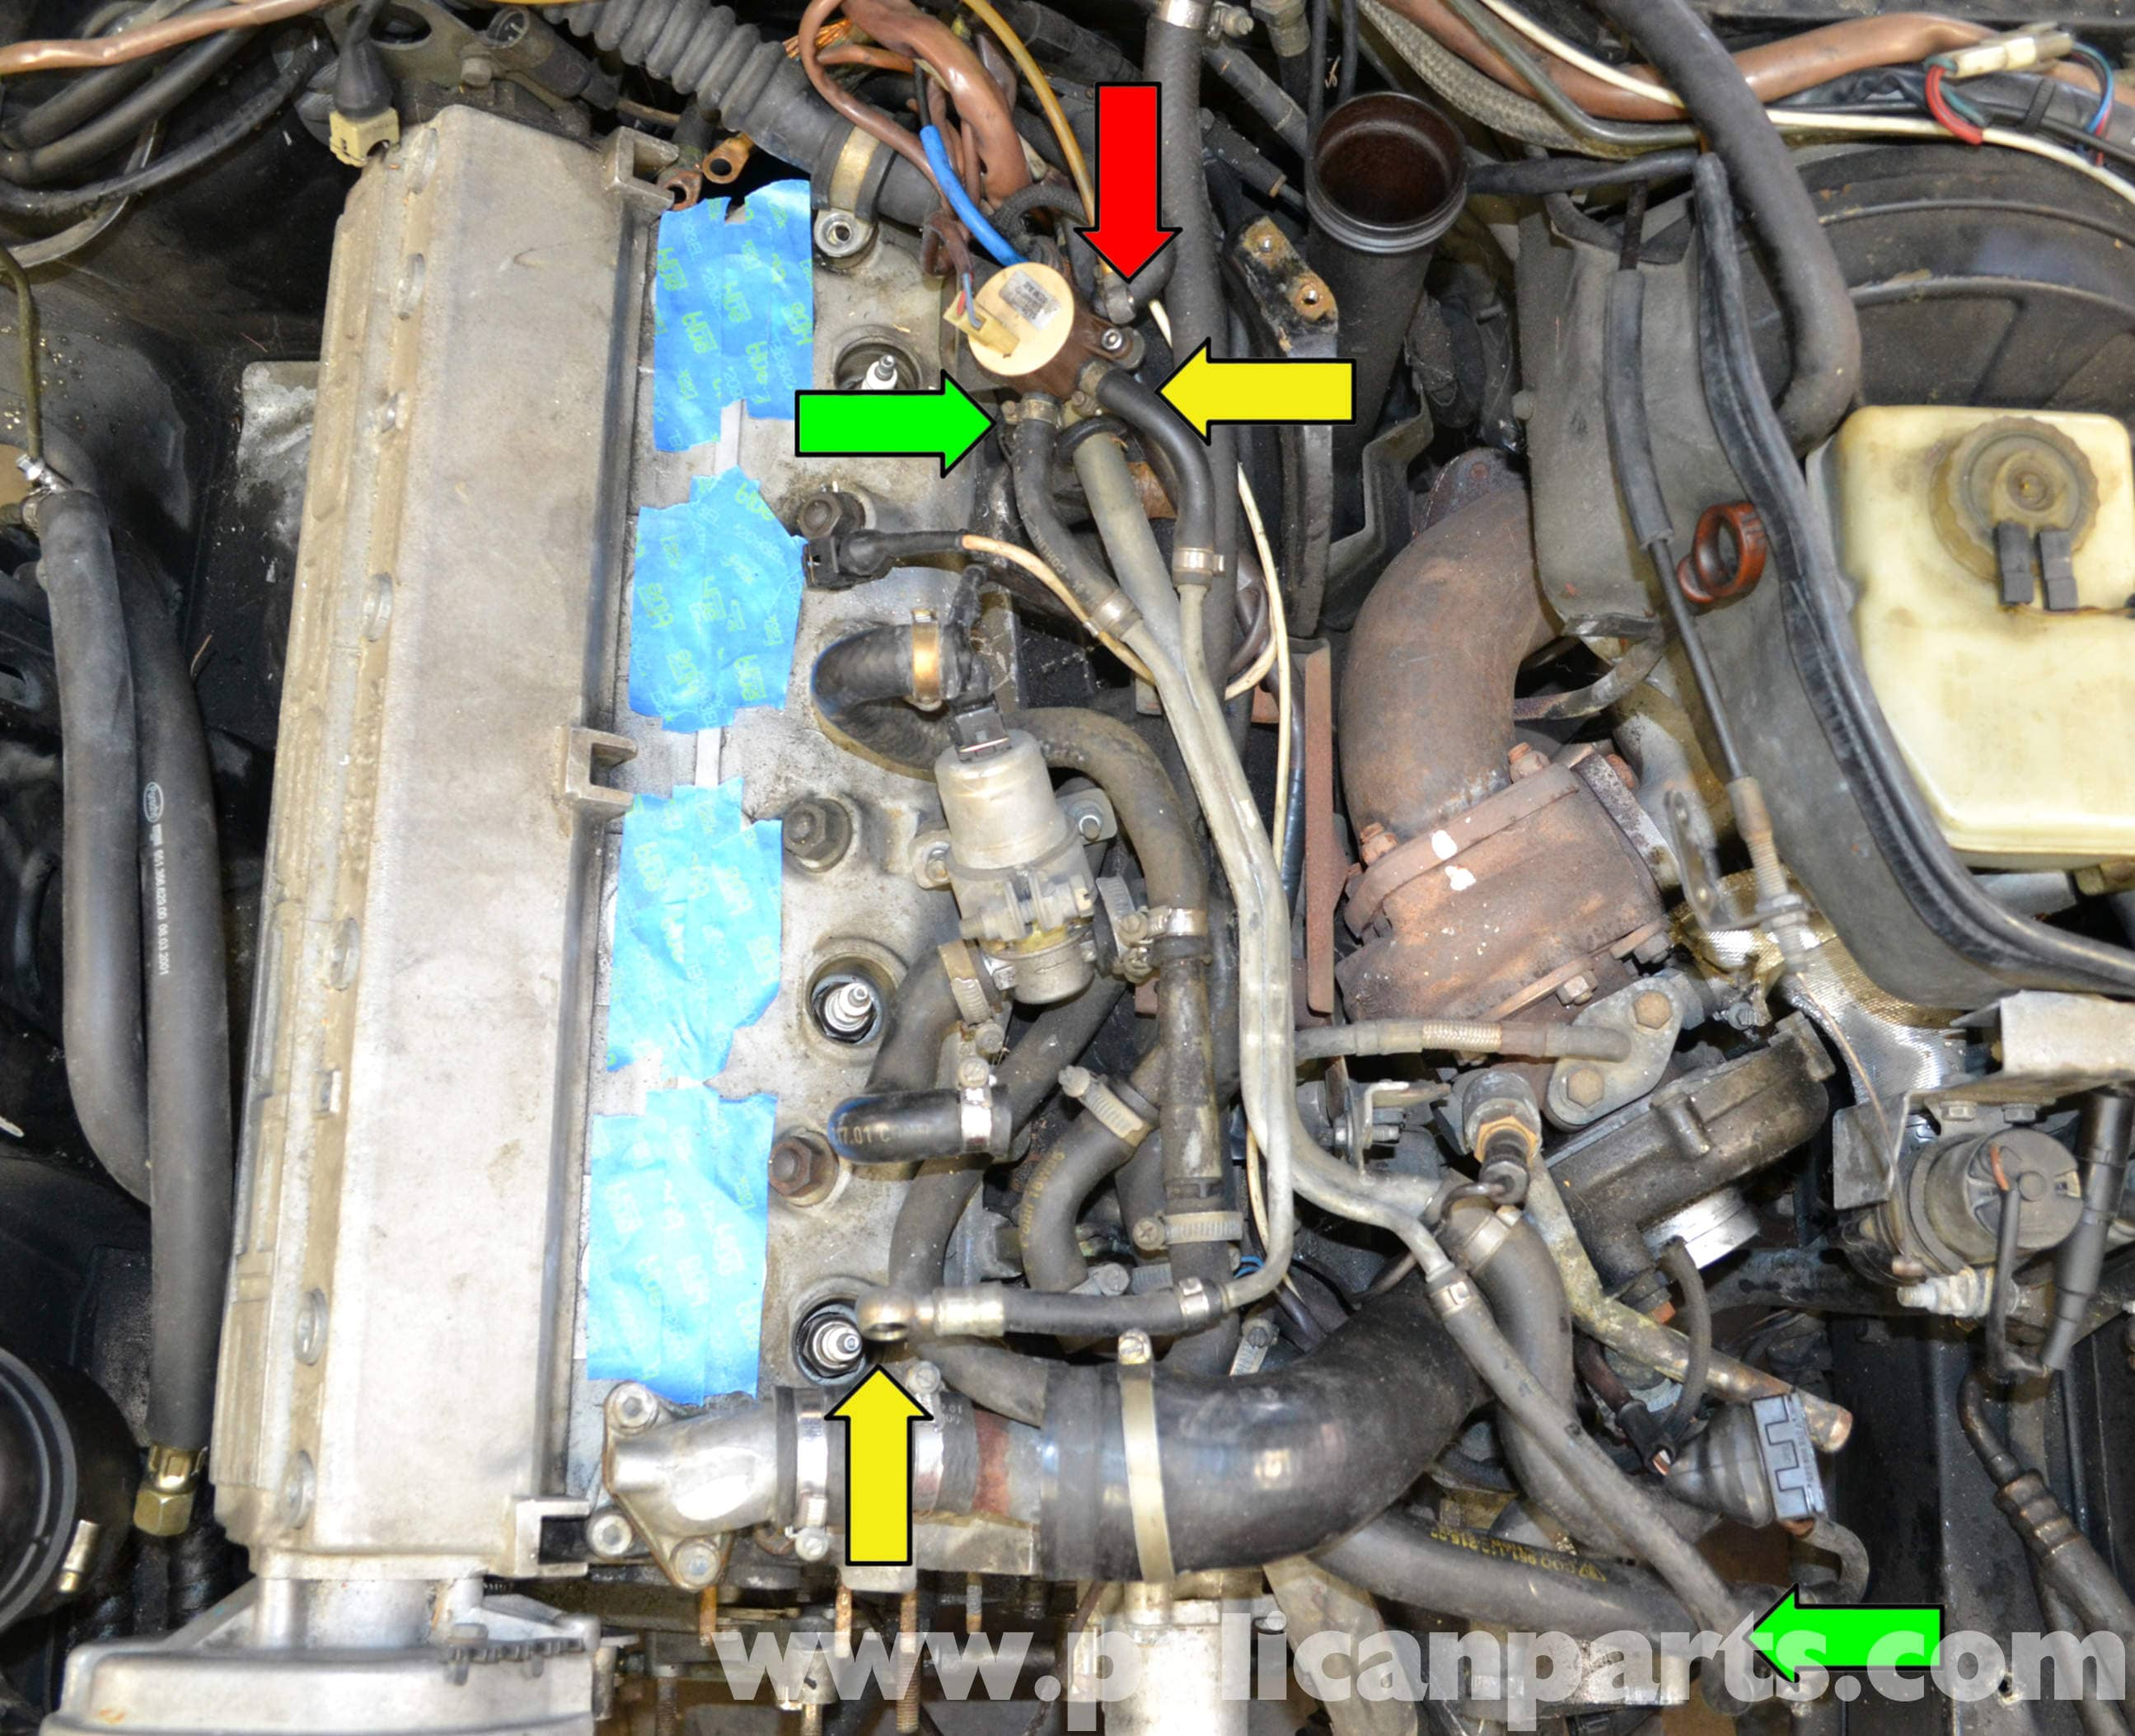 Volvo Parts Diagram 1988 740 Turbo Free Image About Wiring Diagram